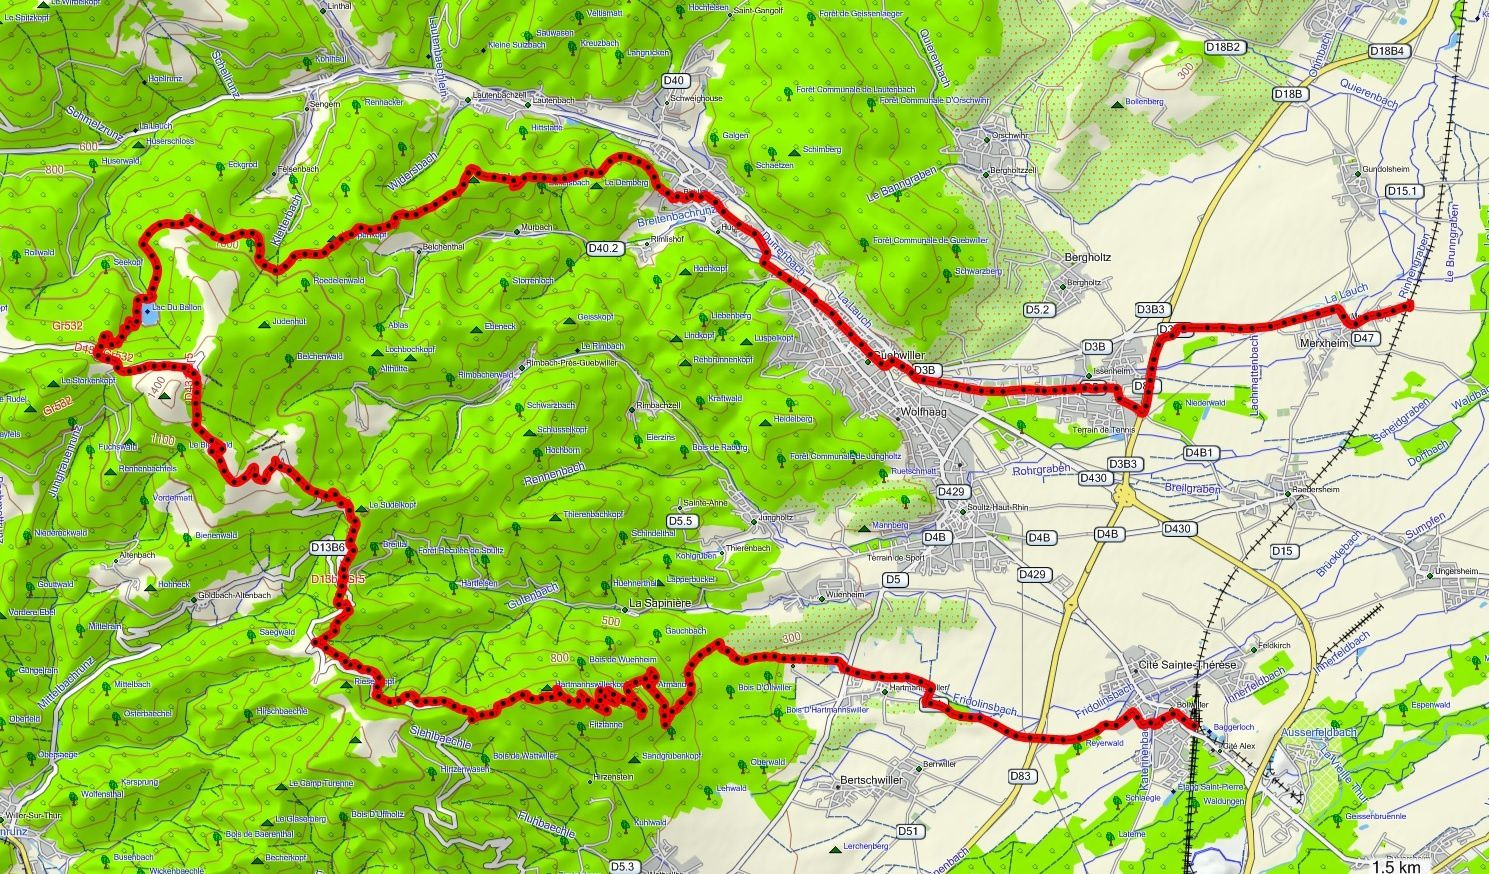 VTT Grand Ballon - 16 juin 2013